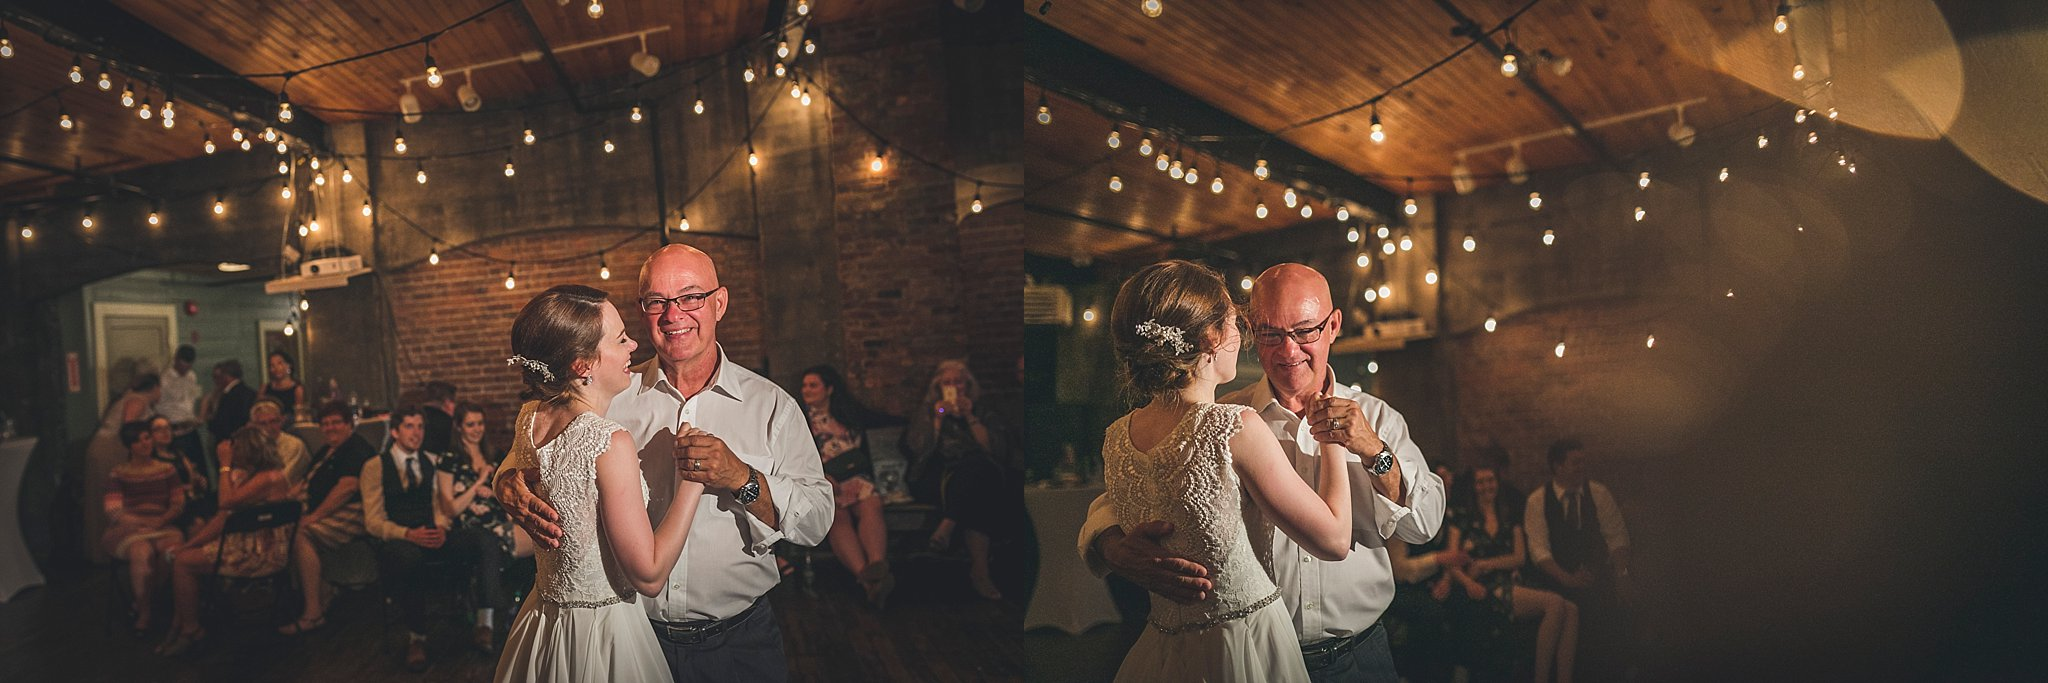 Bride and her father dance at The Rocket Room during their St. John's, Newfoundland wedding